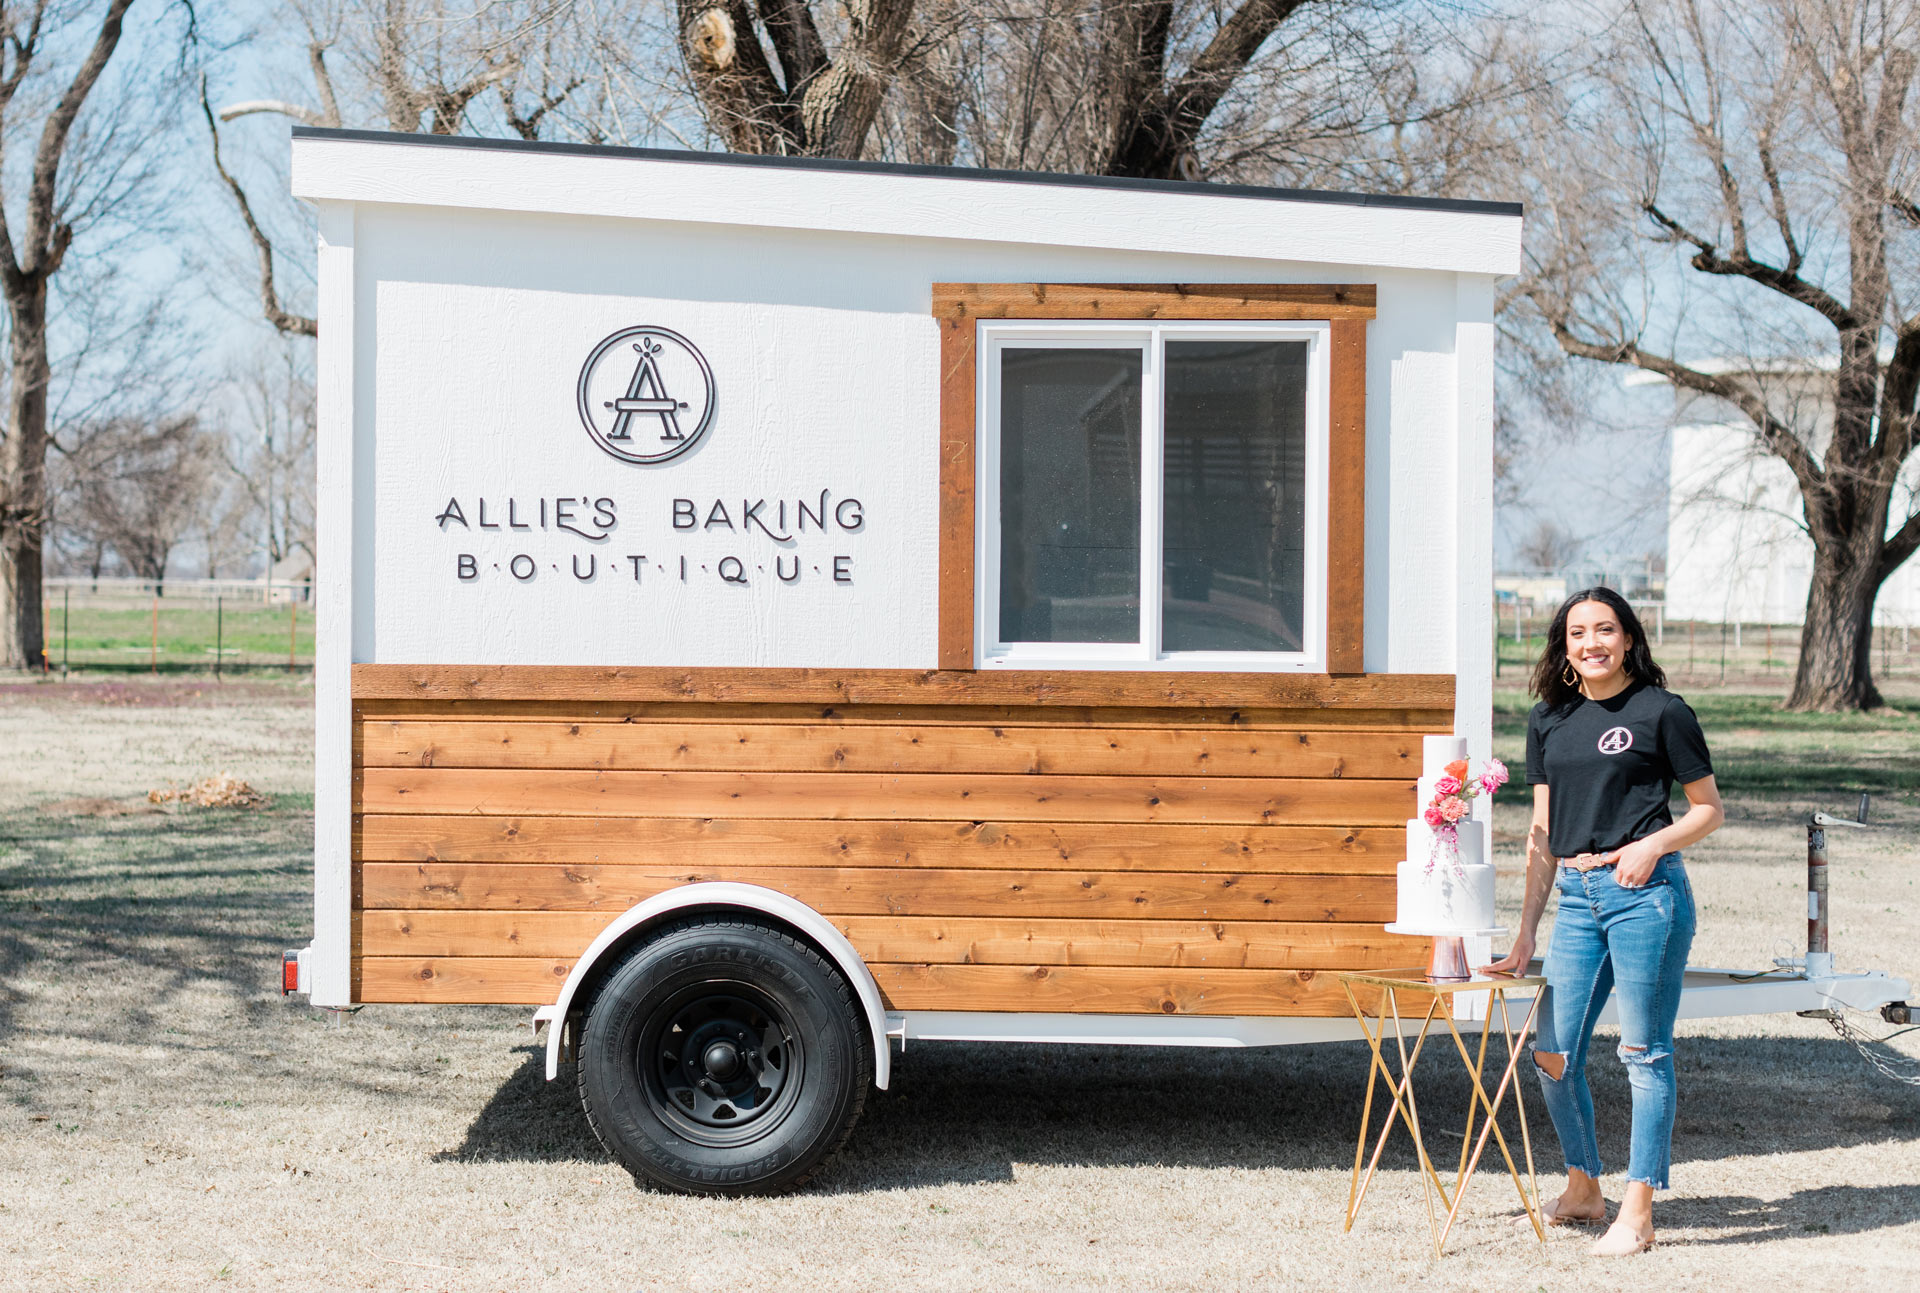 Allie's Baking Boutique Mobile Bakery